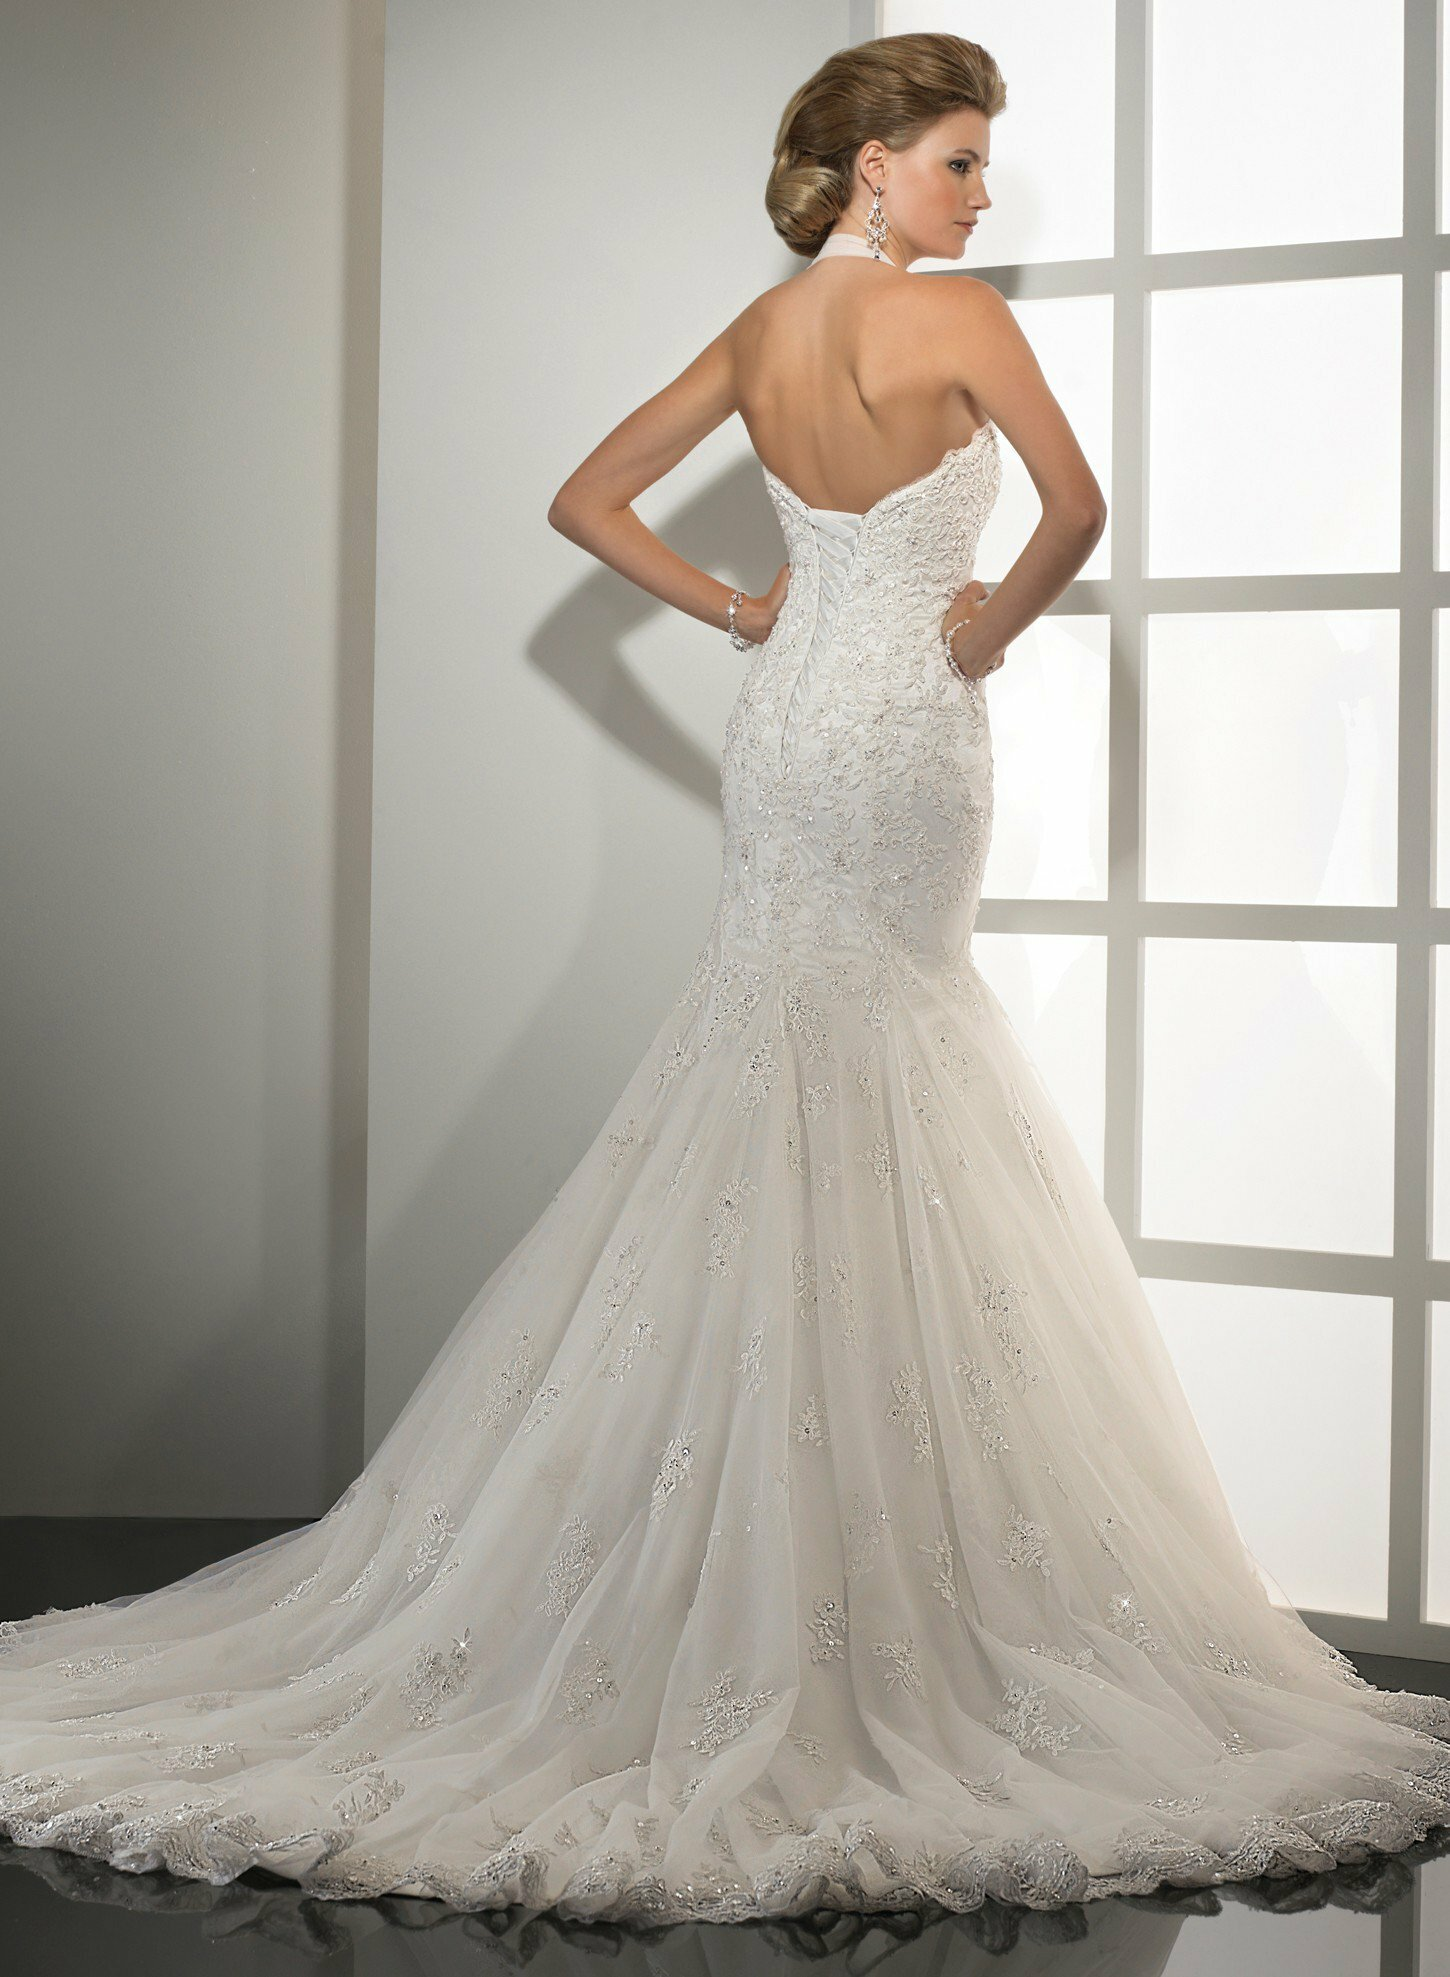 Wedding dresses for small weddings Photo - 9